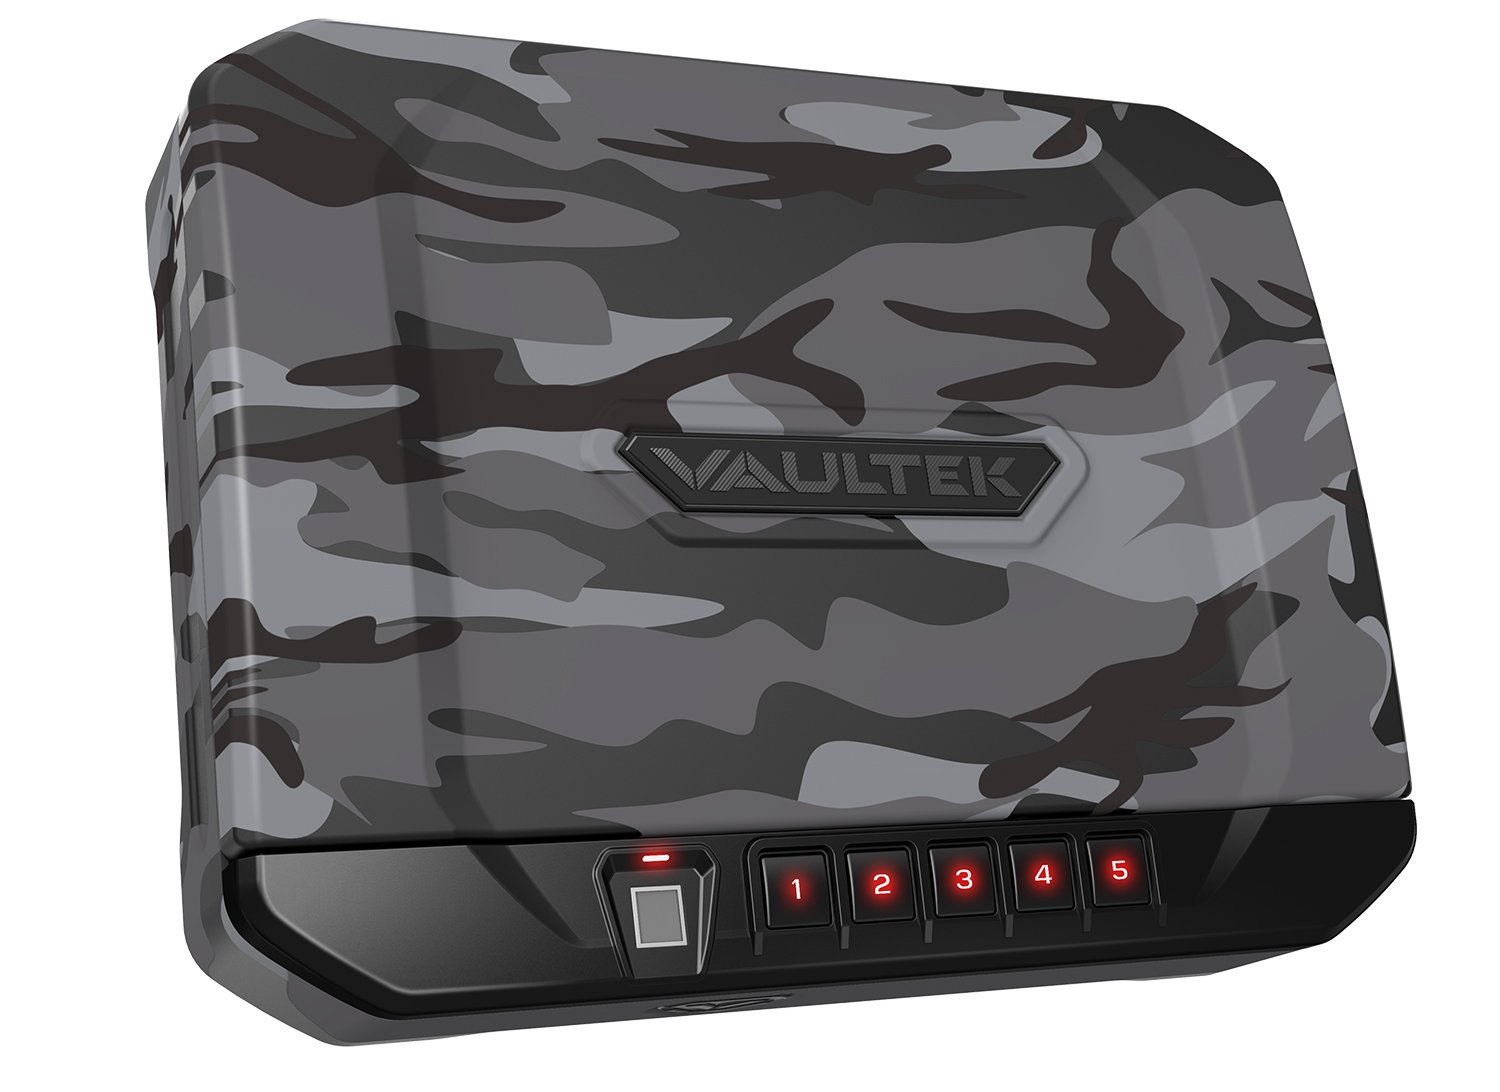 Vaultek VT20i Biometric Handgun Safe Bluetooth Smart Pistol Safe with Auto-Open Lid and Rechargeable Battery (Urban Camo) by Vaultek